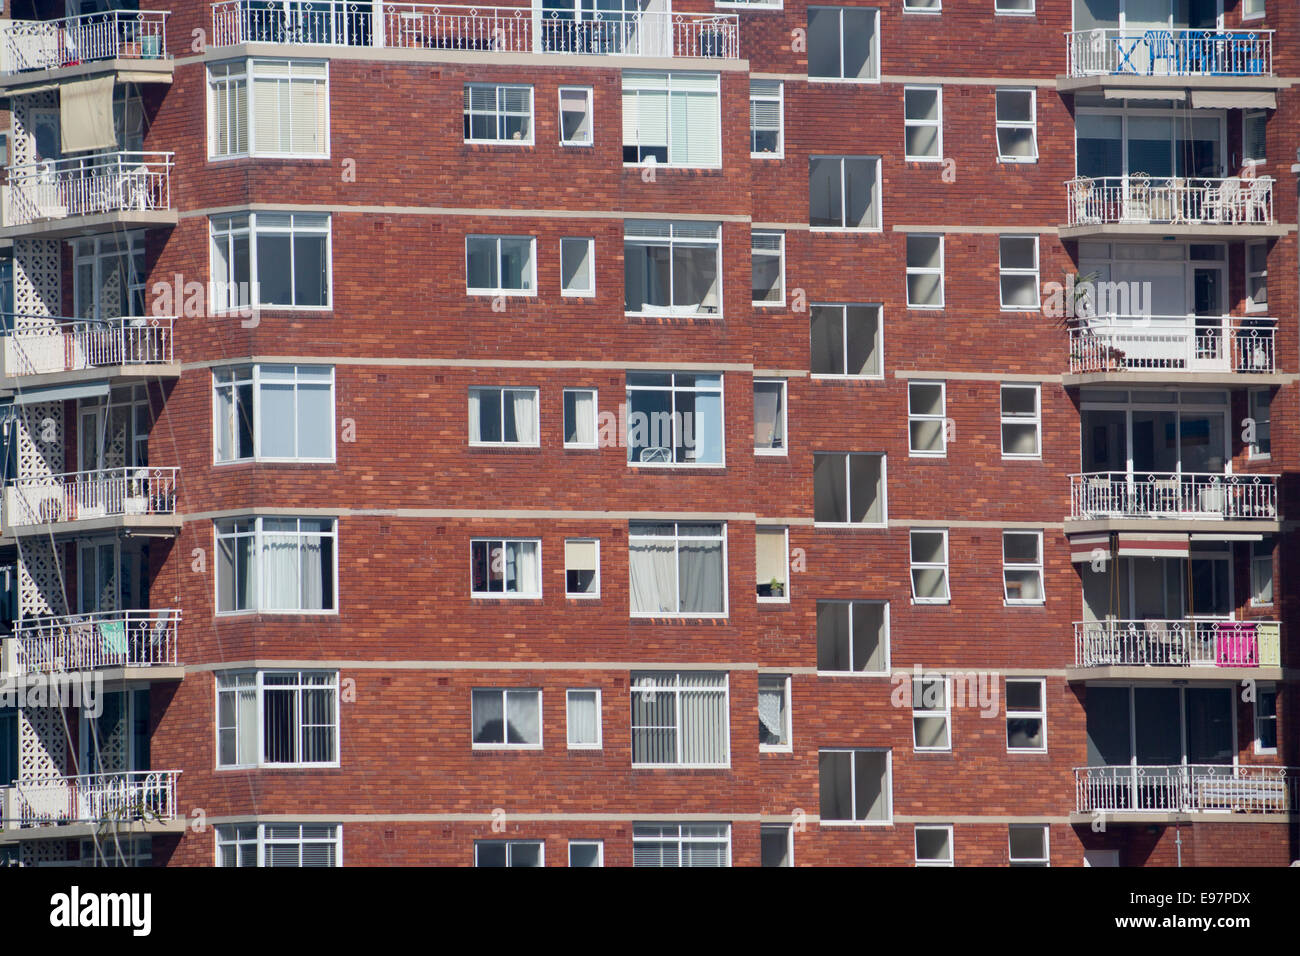 Red brick 20th century apartments Manly Sydney NSW Australia Stock ...